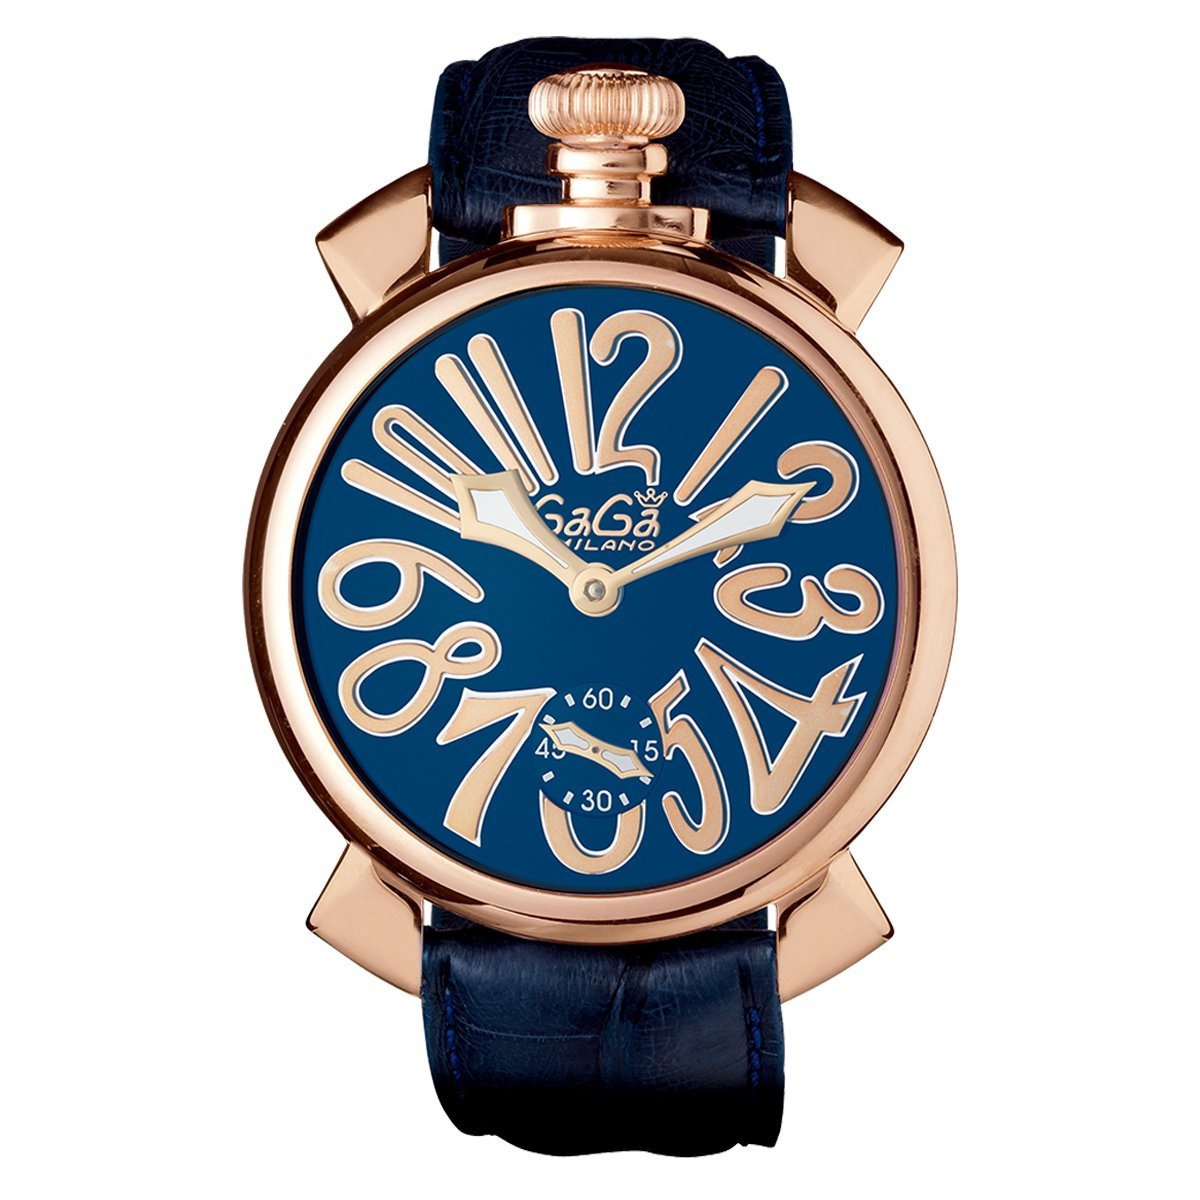 GaGà Milano Manuale 48MM Rose Gold Blue - Watches & Crystals